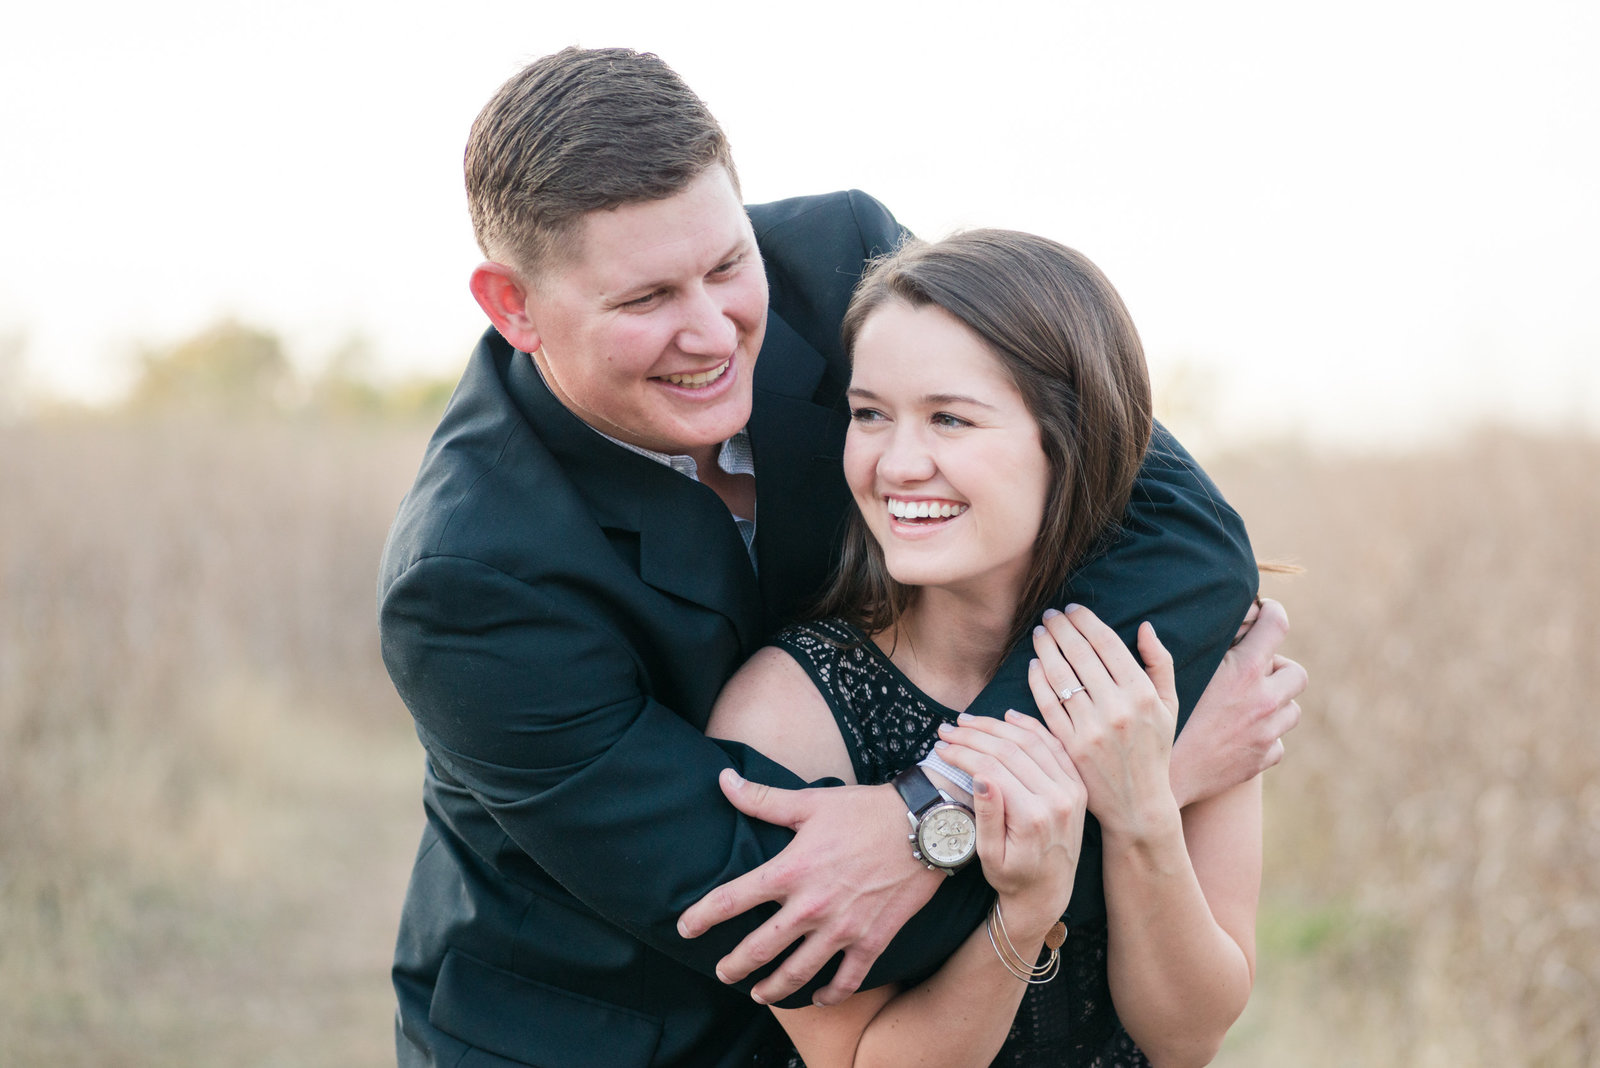 Engagement Photos at Cibolo Nature Center in Boerne, Texas Bride in Little Black Dress